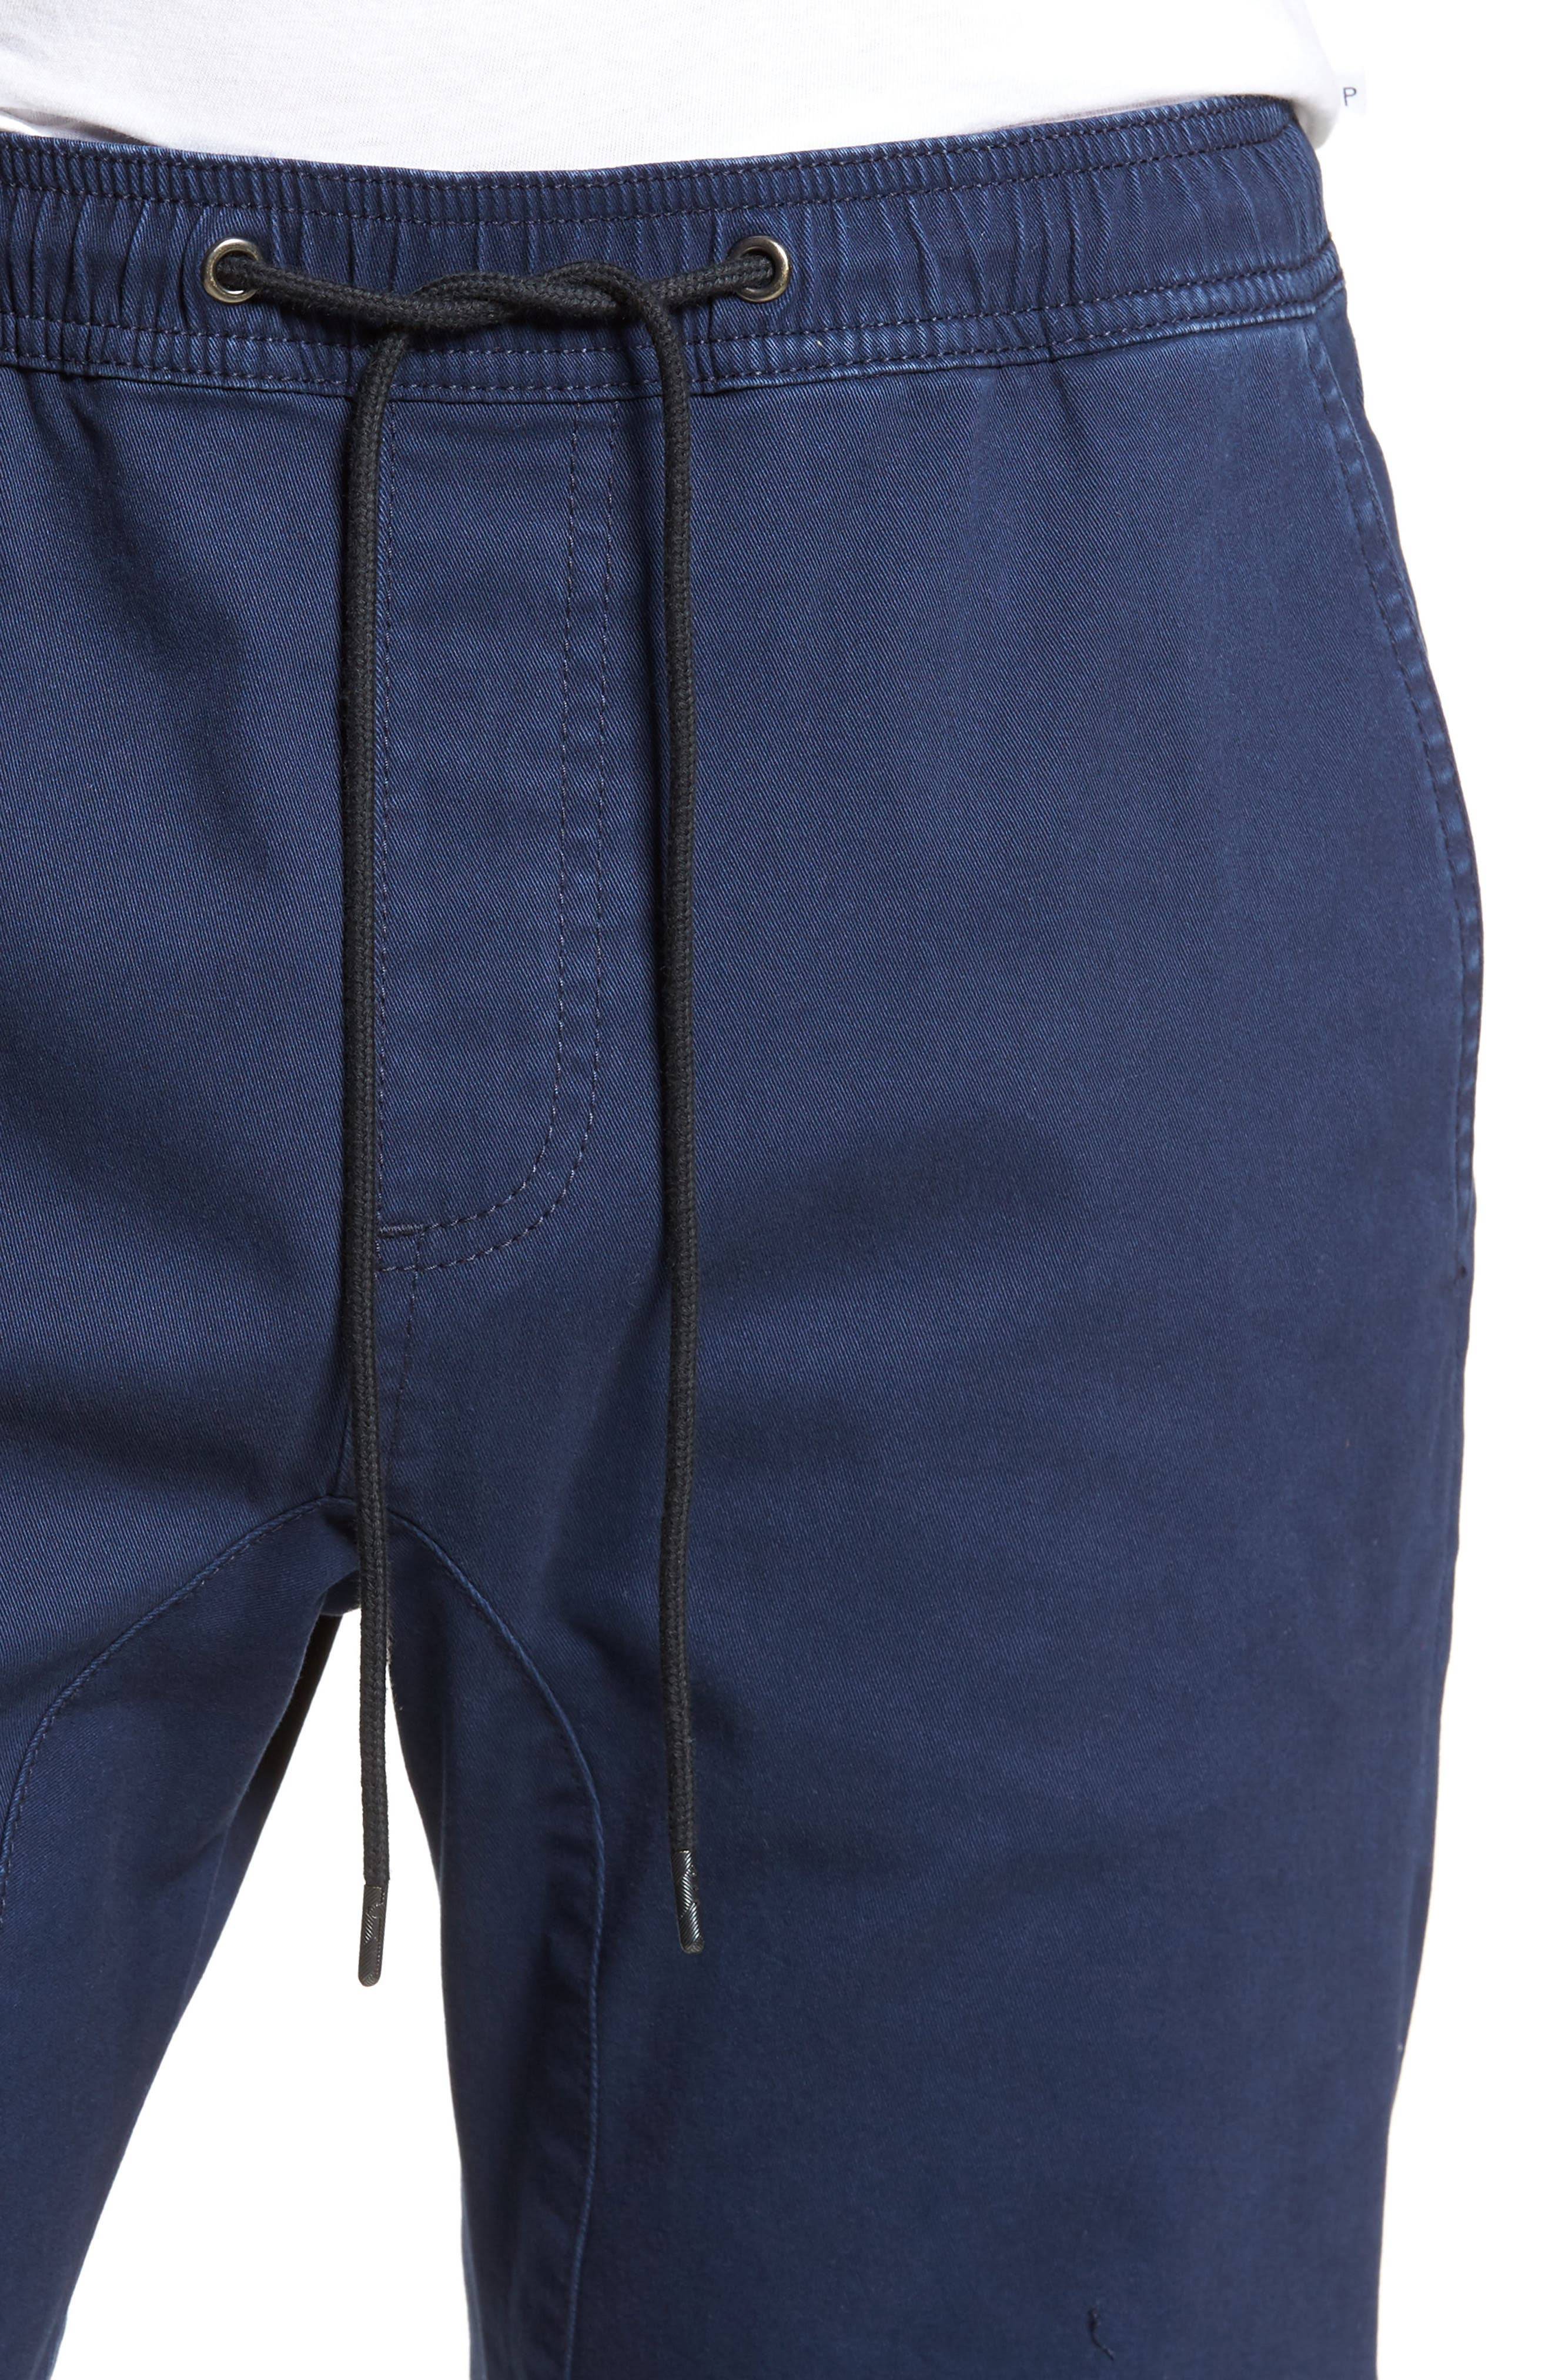 Jogger Pants,                             Alternate thumbnail 20, color,